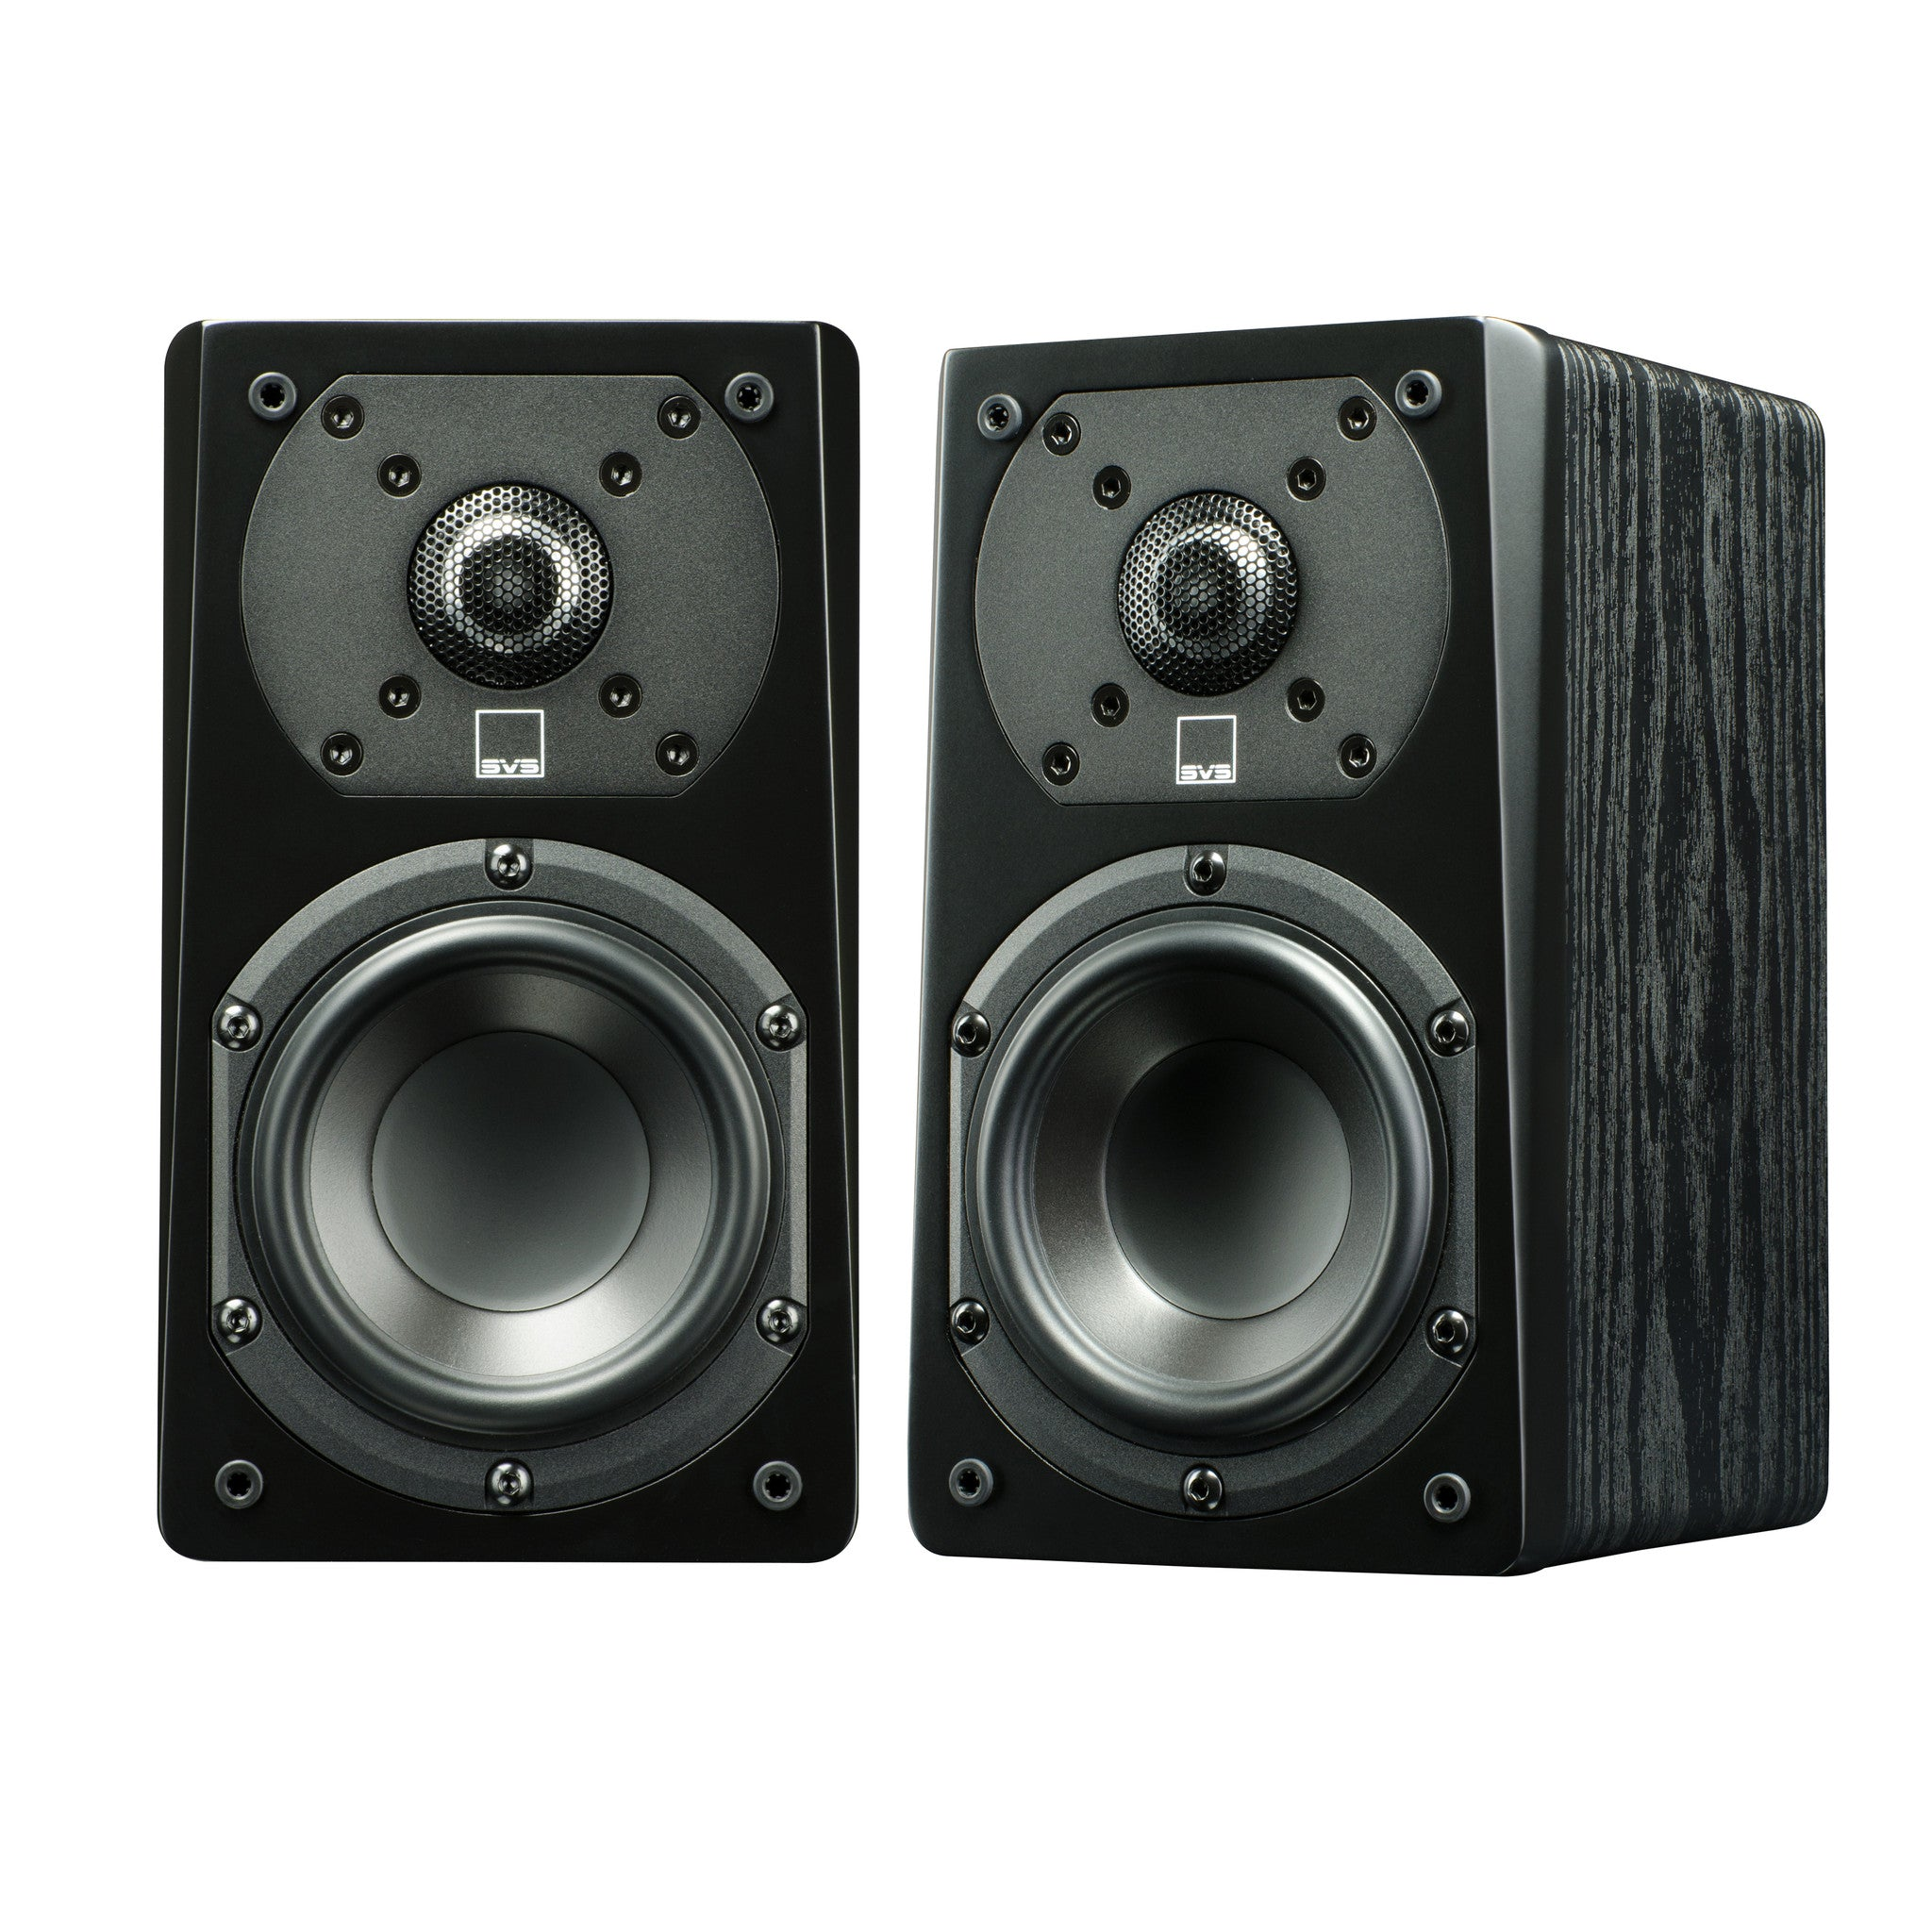 svs prime satellite speaker compact home theater speakers